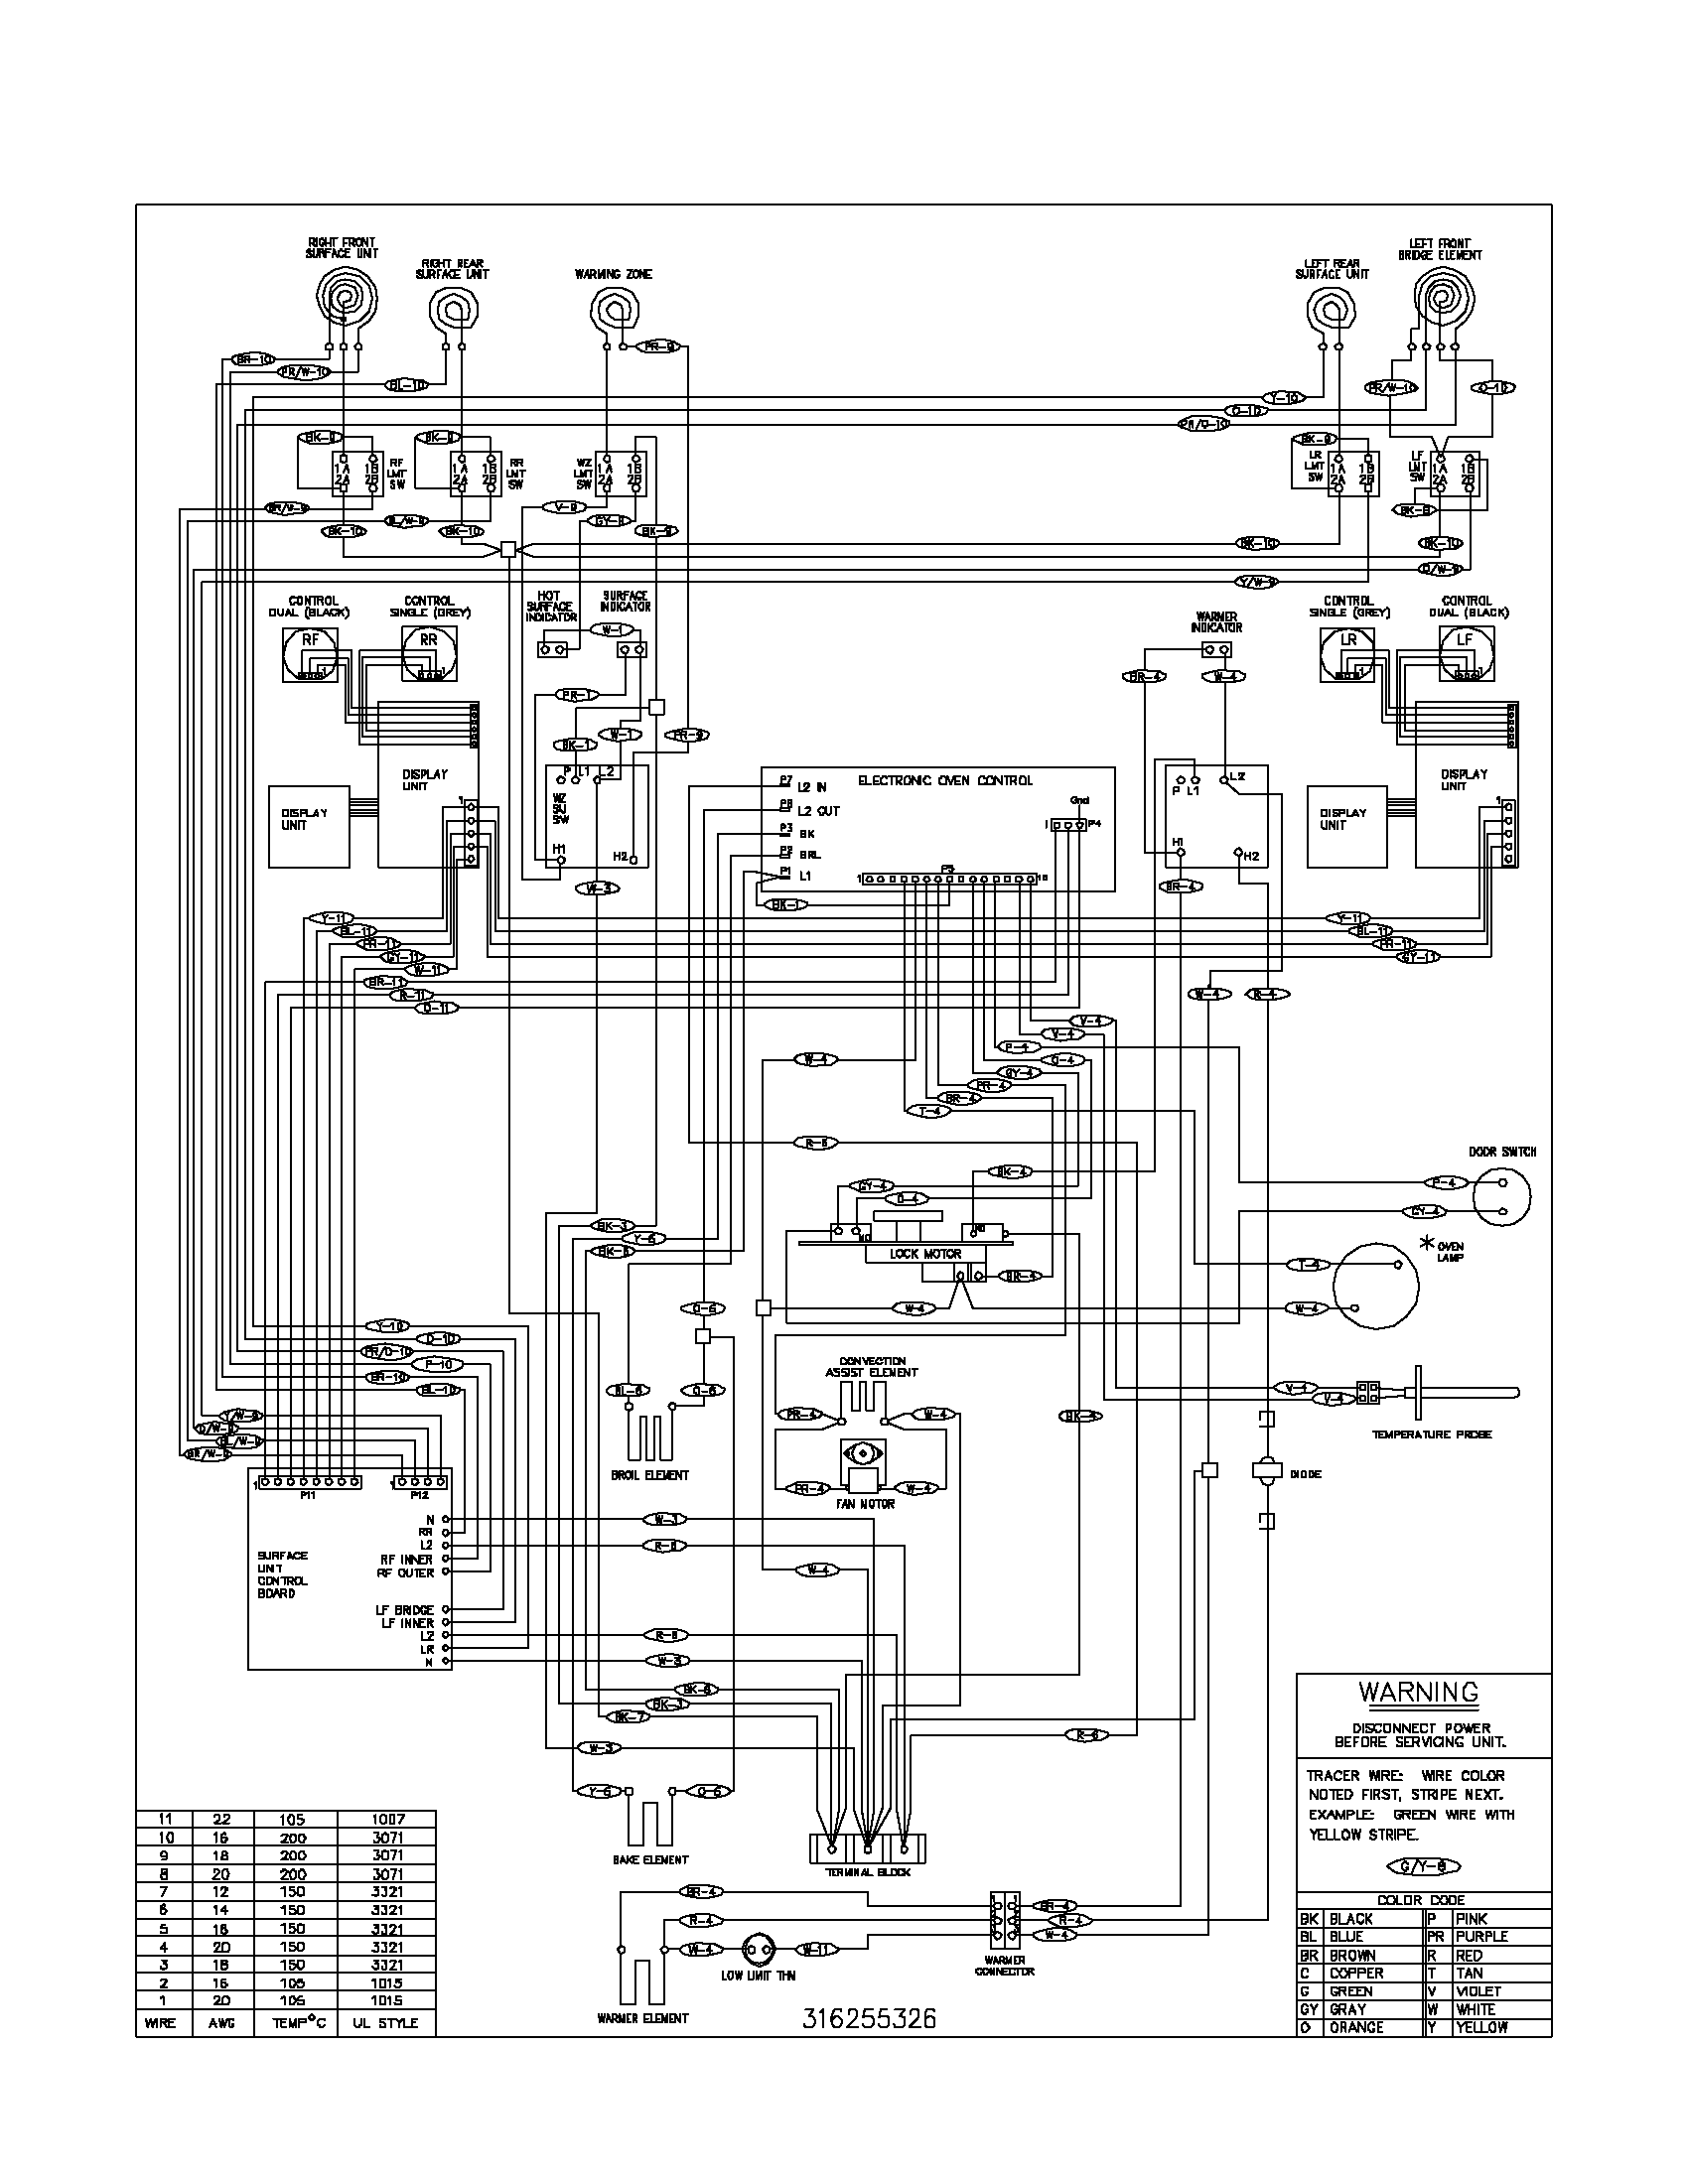 Wiring Diagram For Westinghouse Furnace